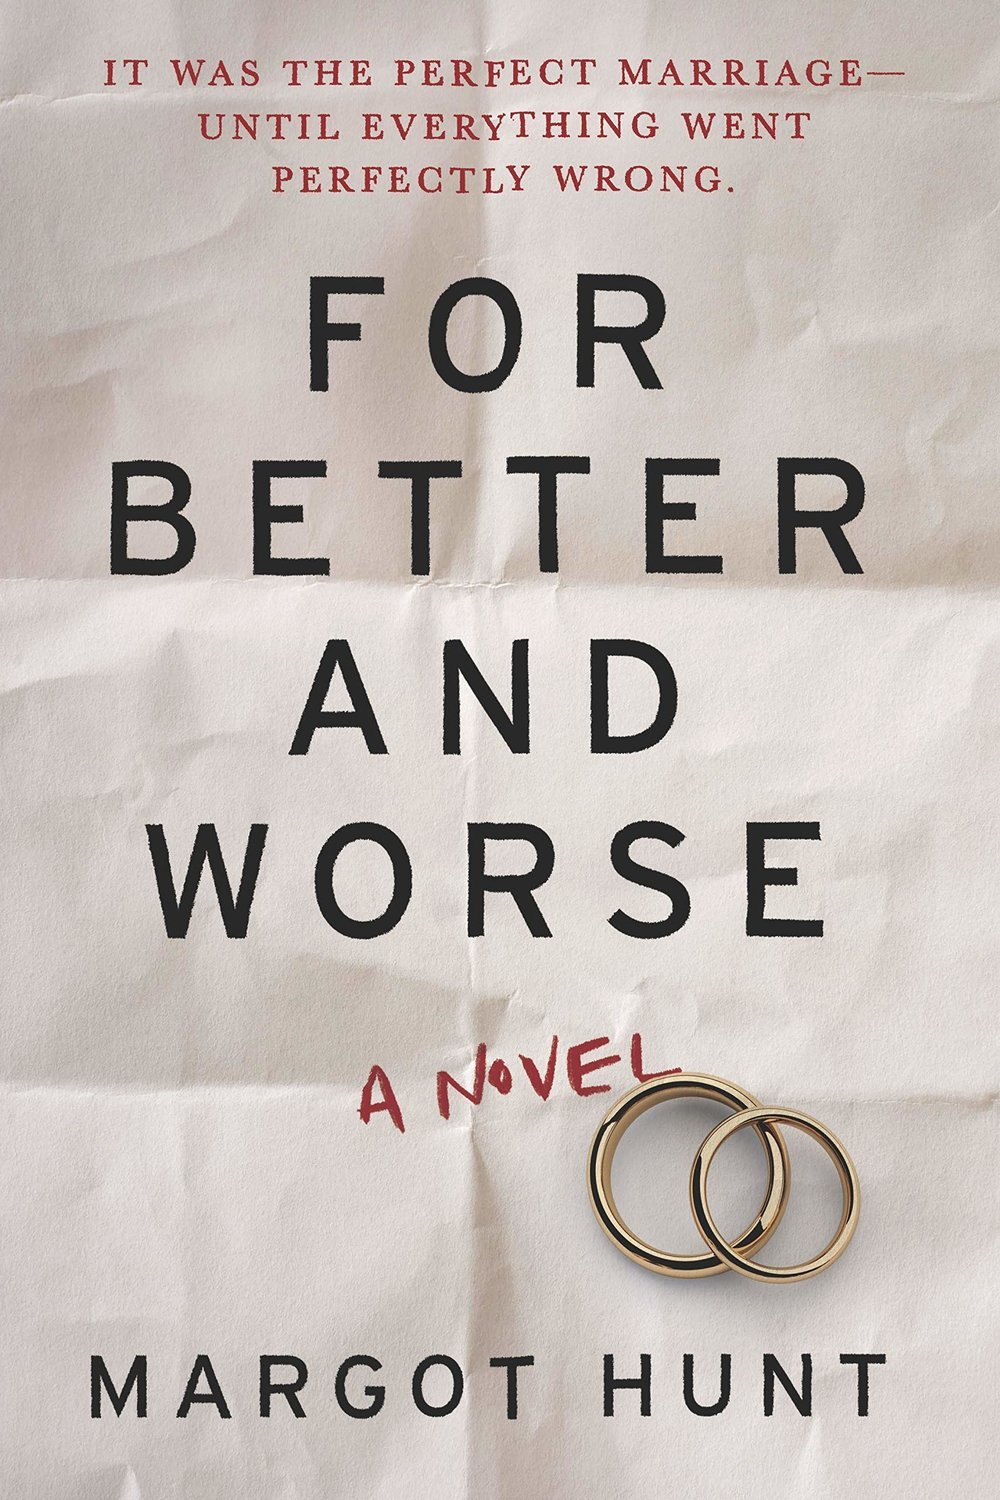 FOR BETTER AND WORSE by Margot Hunt